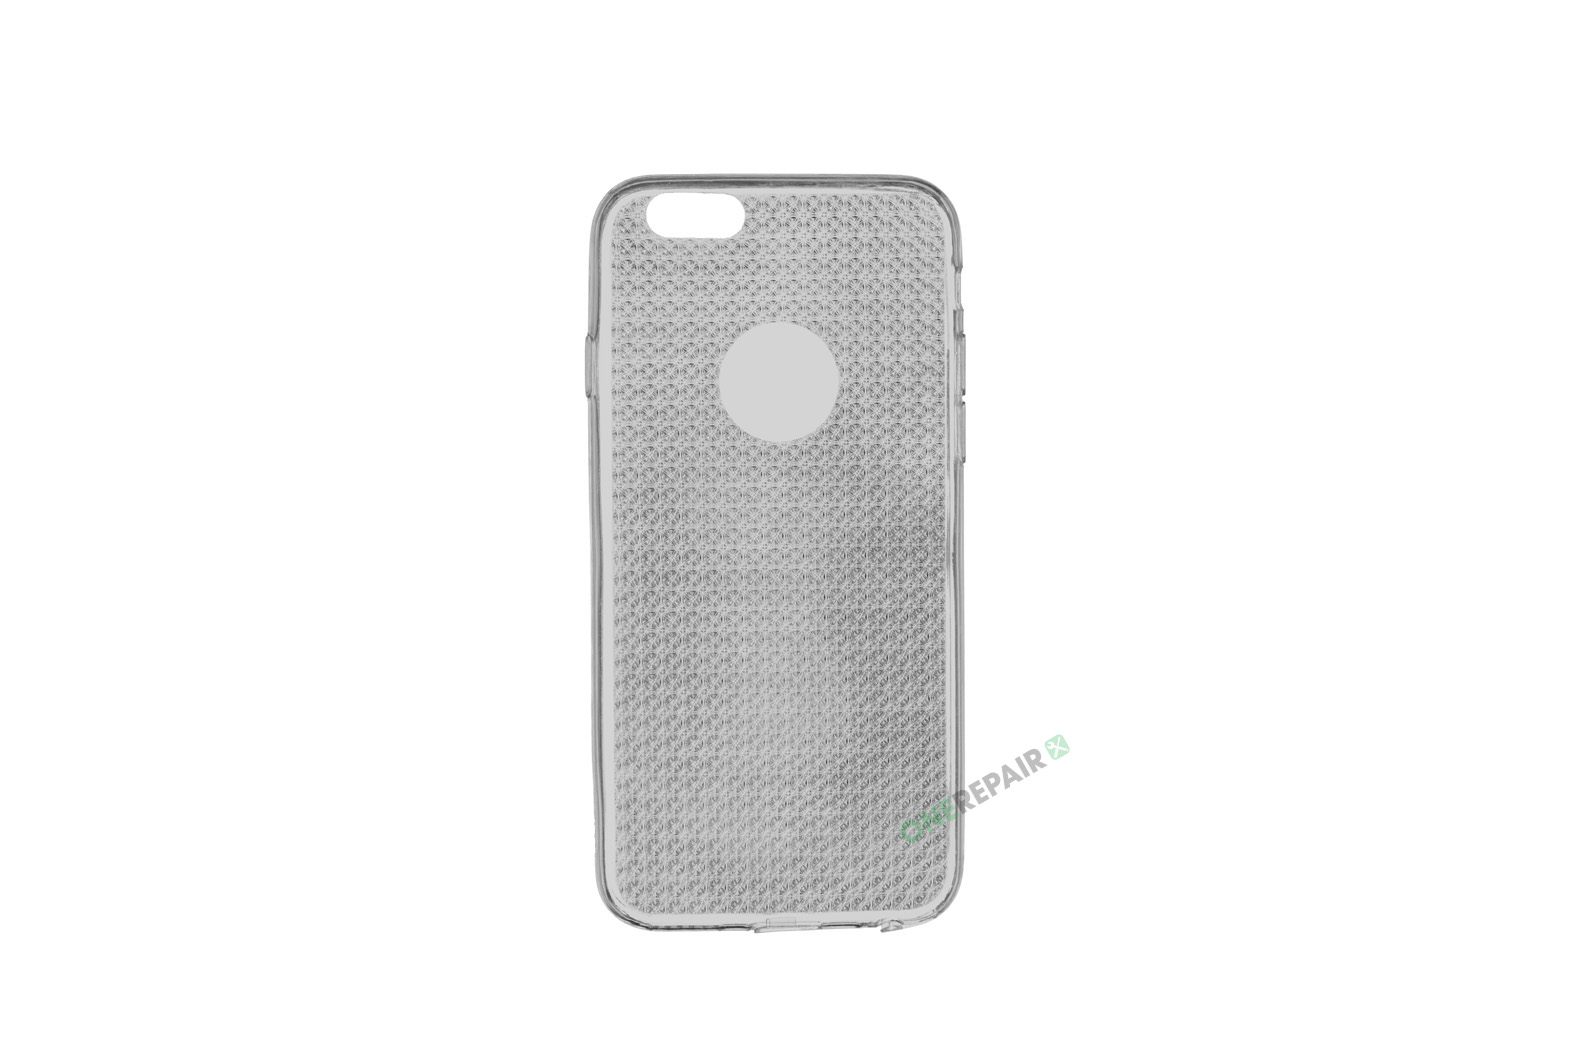 iPhone 6, 6S, A1549, A1586, A1589, A1633, A1688, A1700, A1691, Apple, Cover, Transparent, Gennemsigtig, Graa,